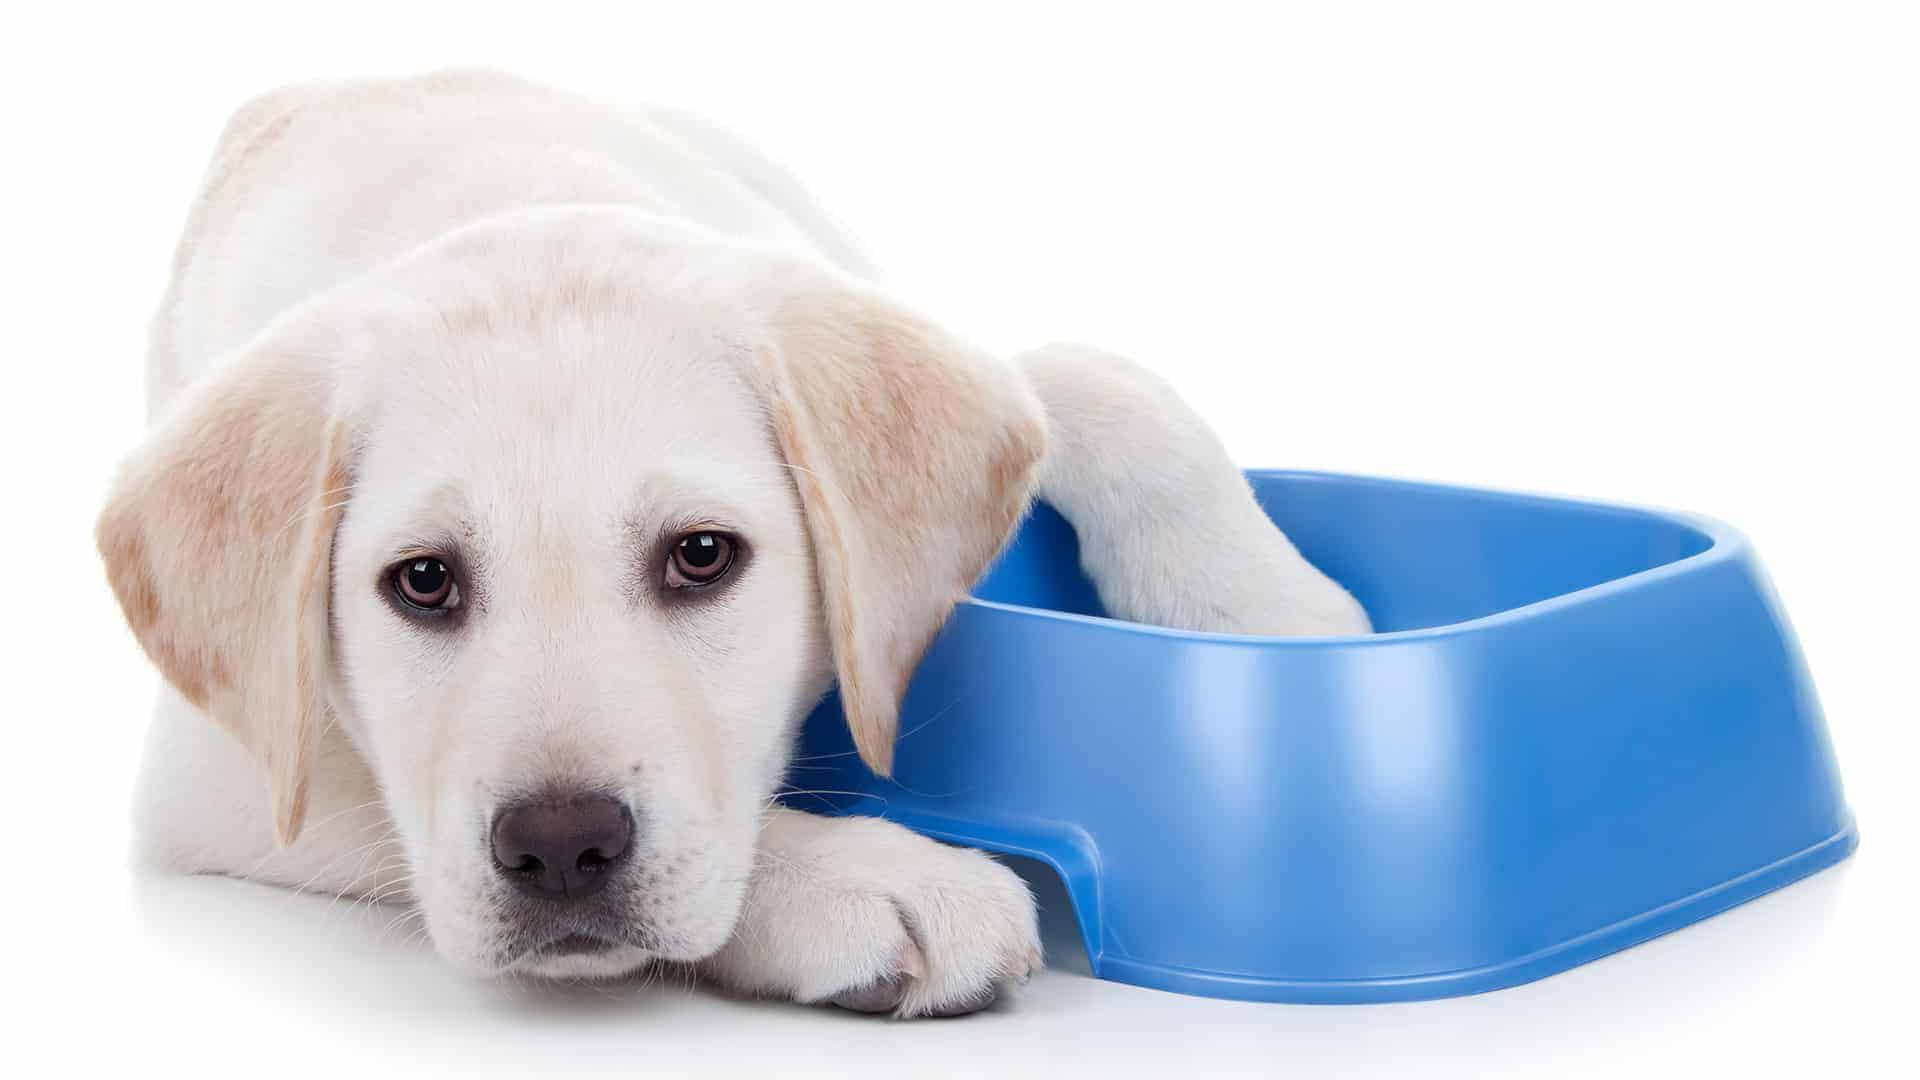 Diet may contribute to Dog Hot Spots